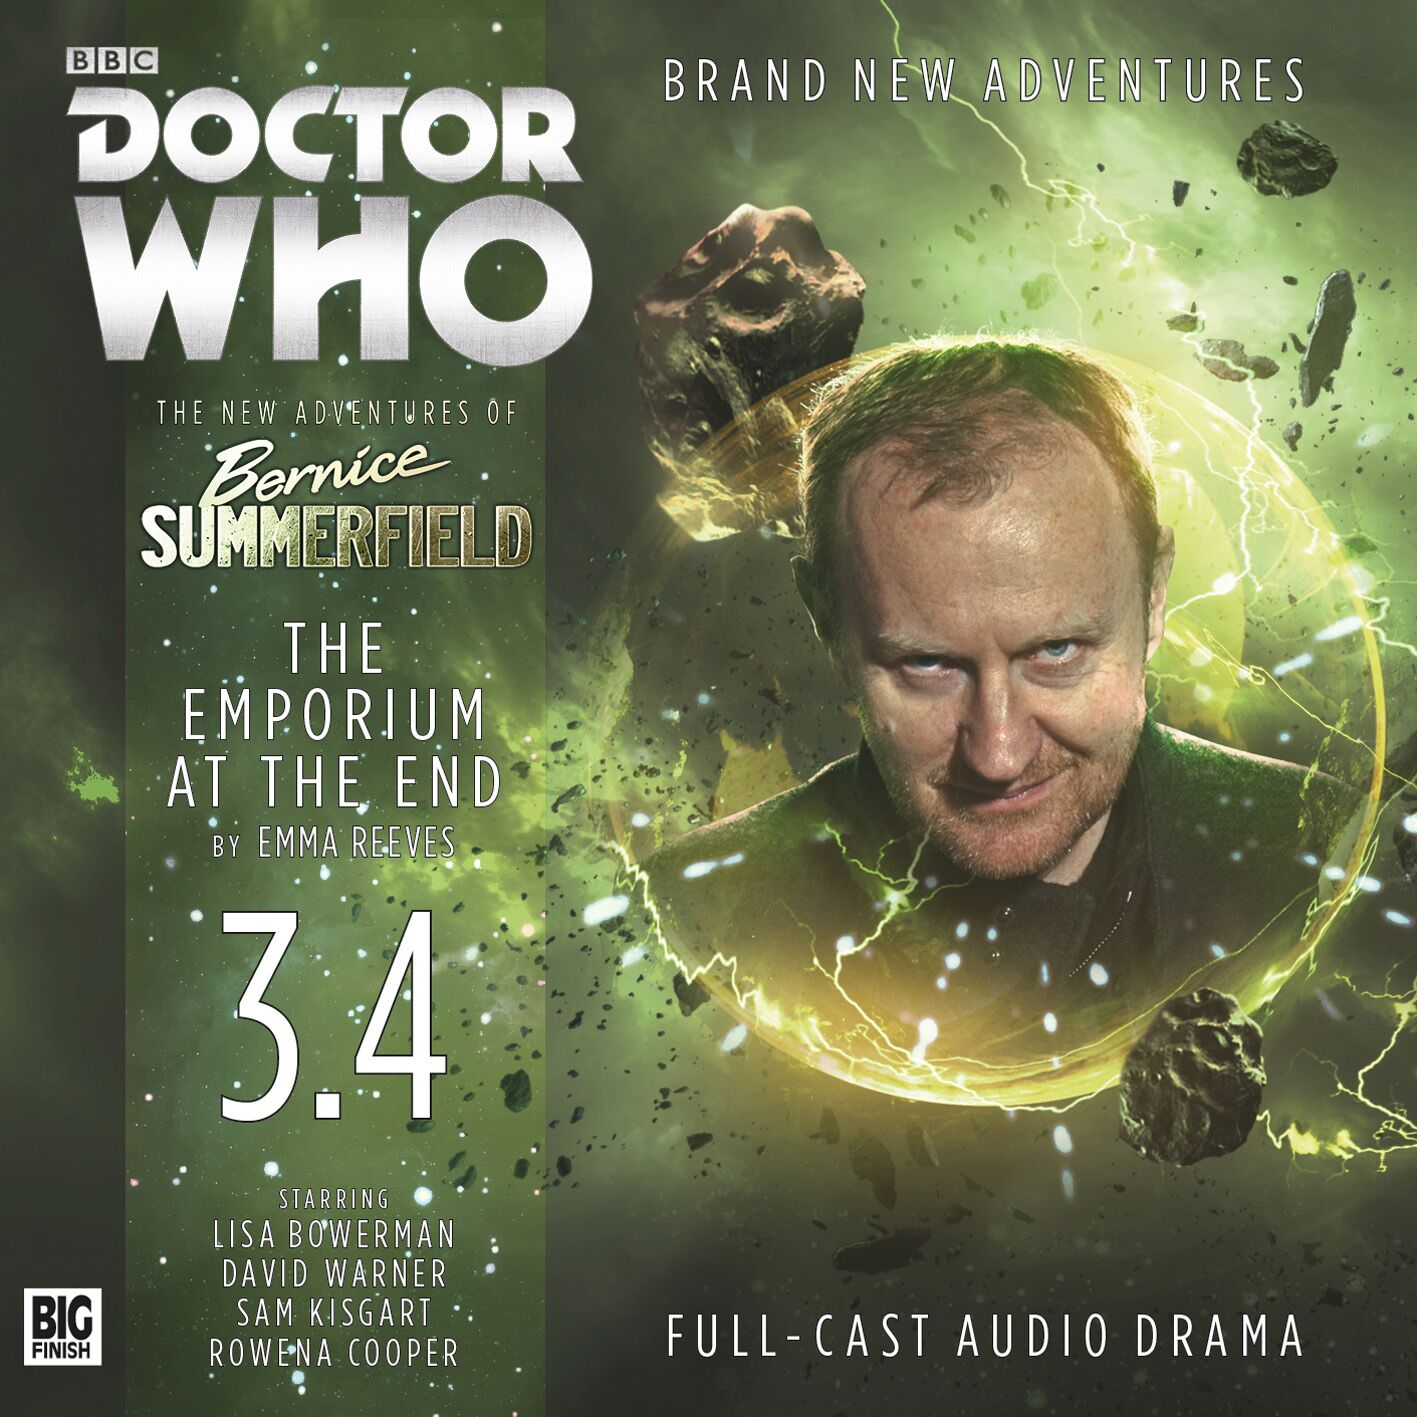 Doctor Who review: The Emporium at the End reintroduces a great villain